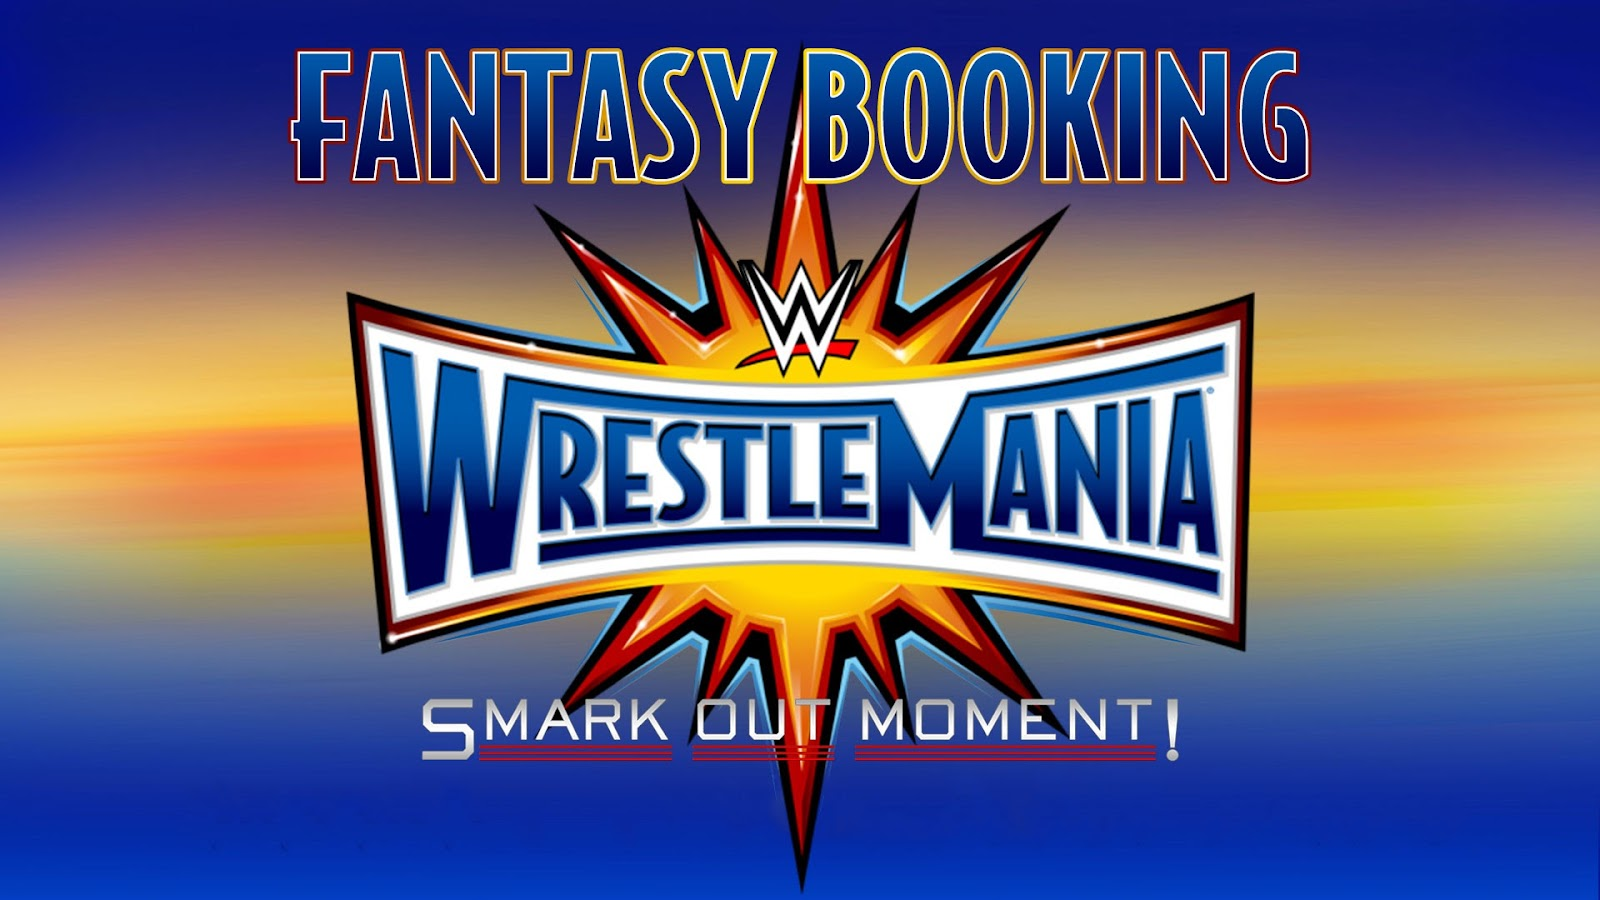 Fantasy Booking WWE shows and feuds